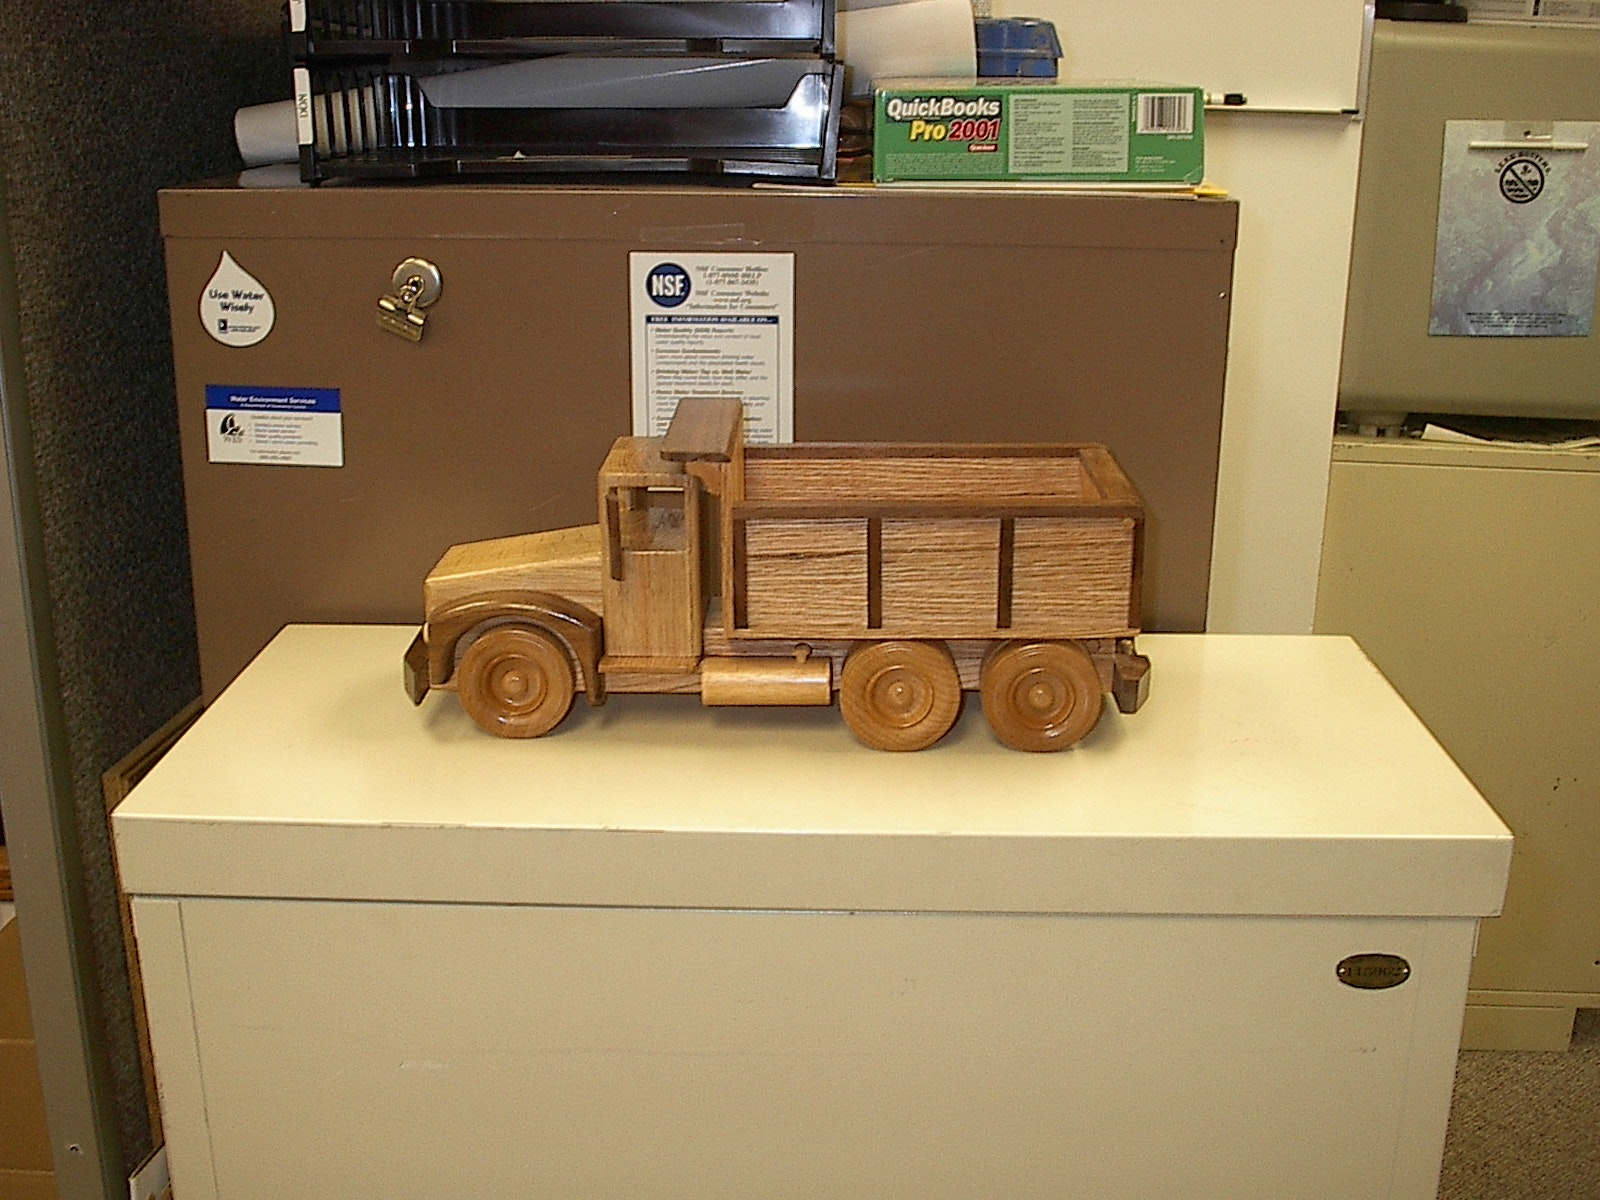 Toy dump truck that Rick built and donated to Water for People Auction